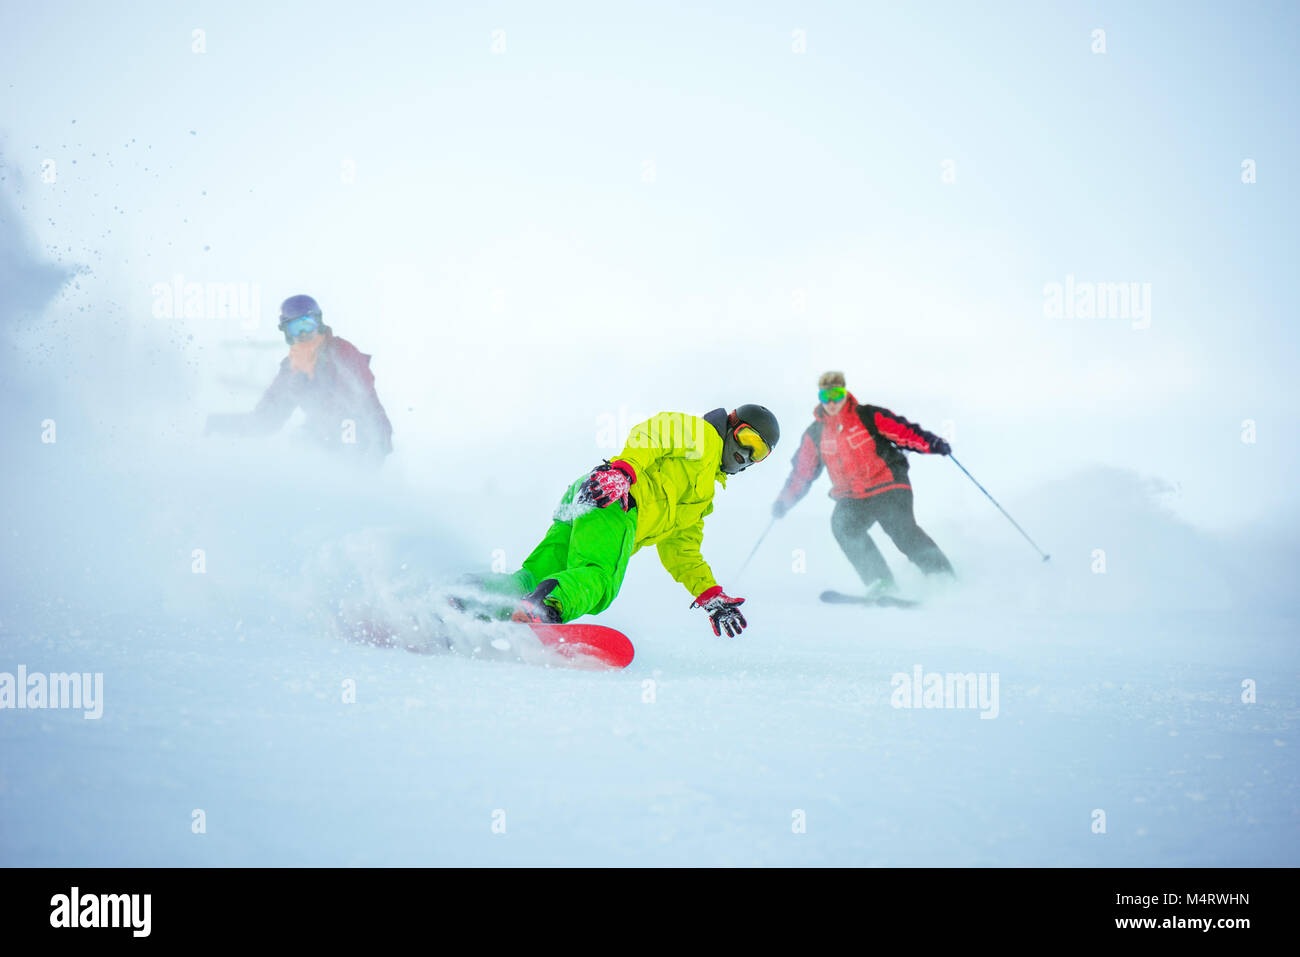 Ski downhill concept with group of snowboarders - Stock Image